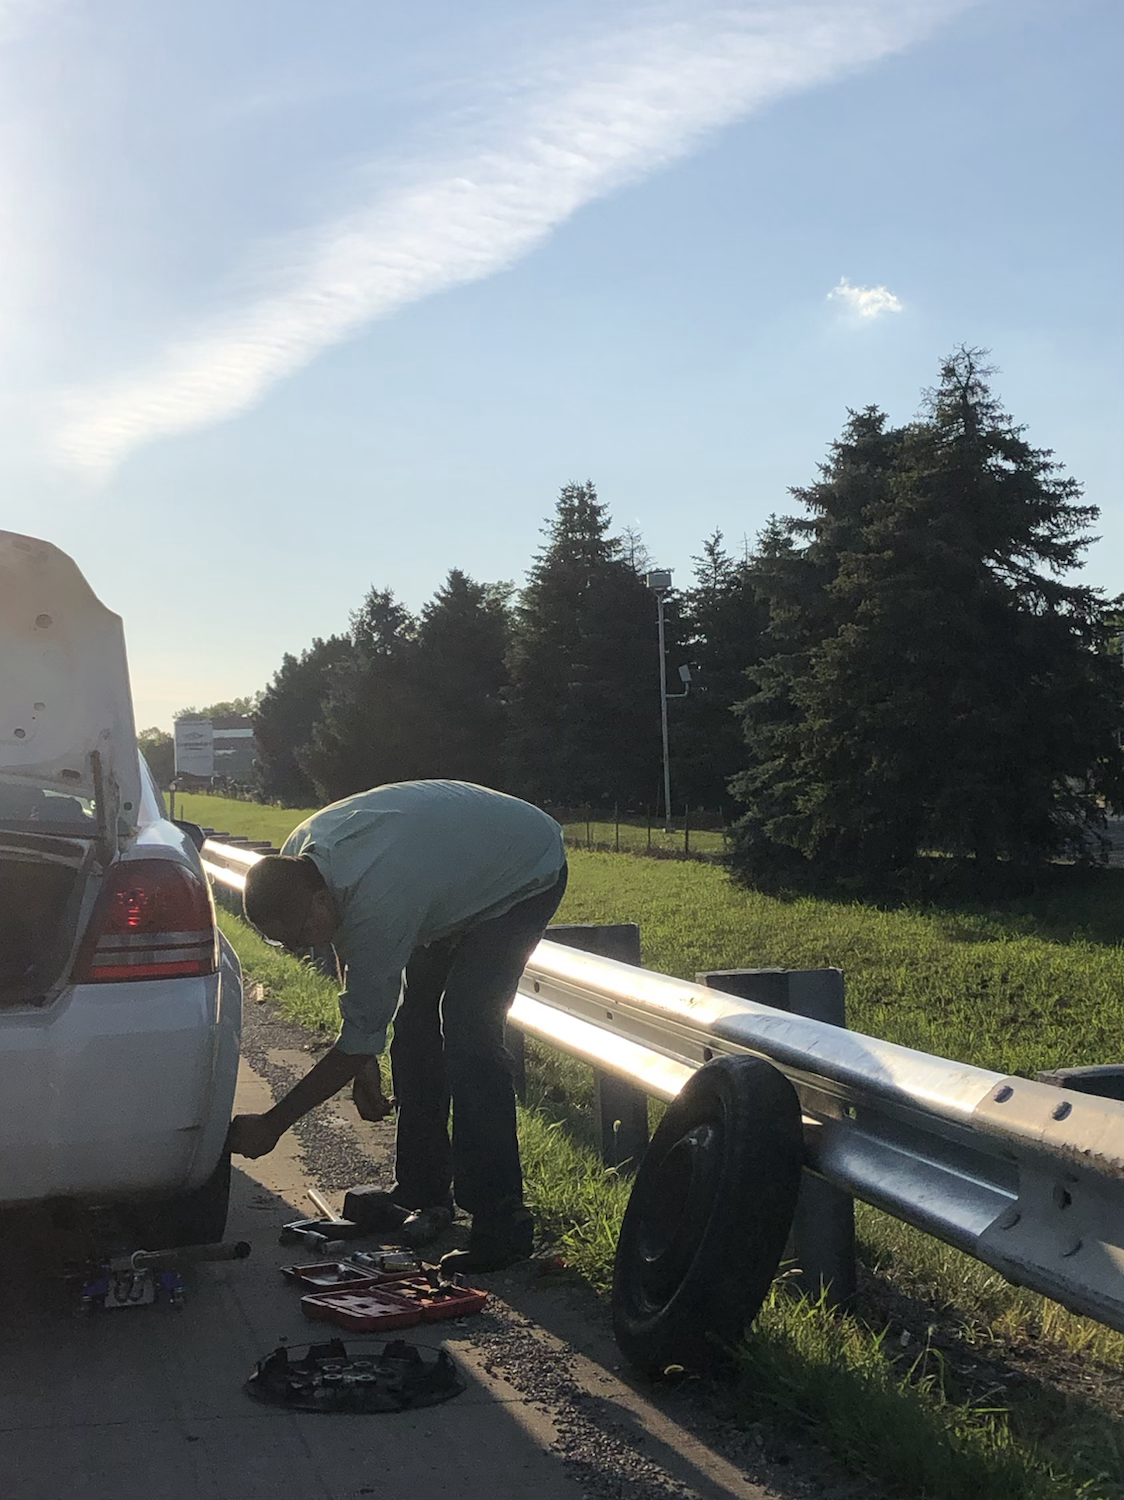 Good samaritan changing a tire